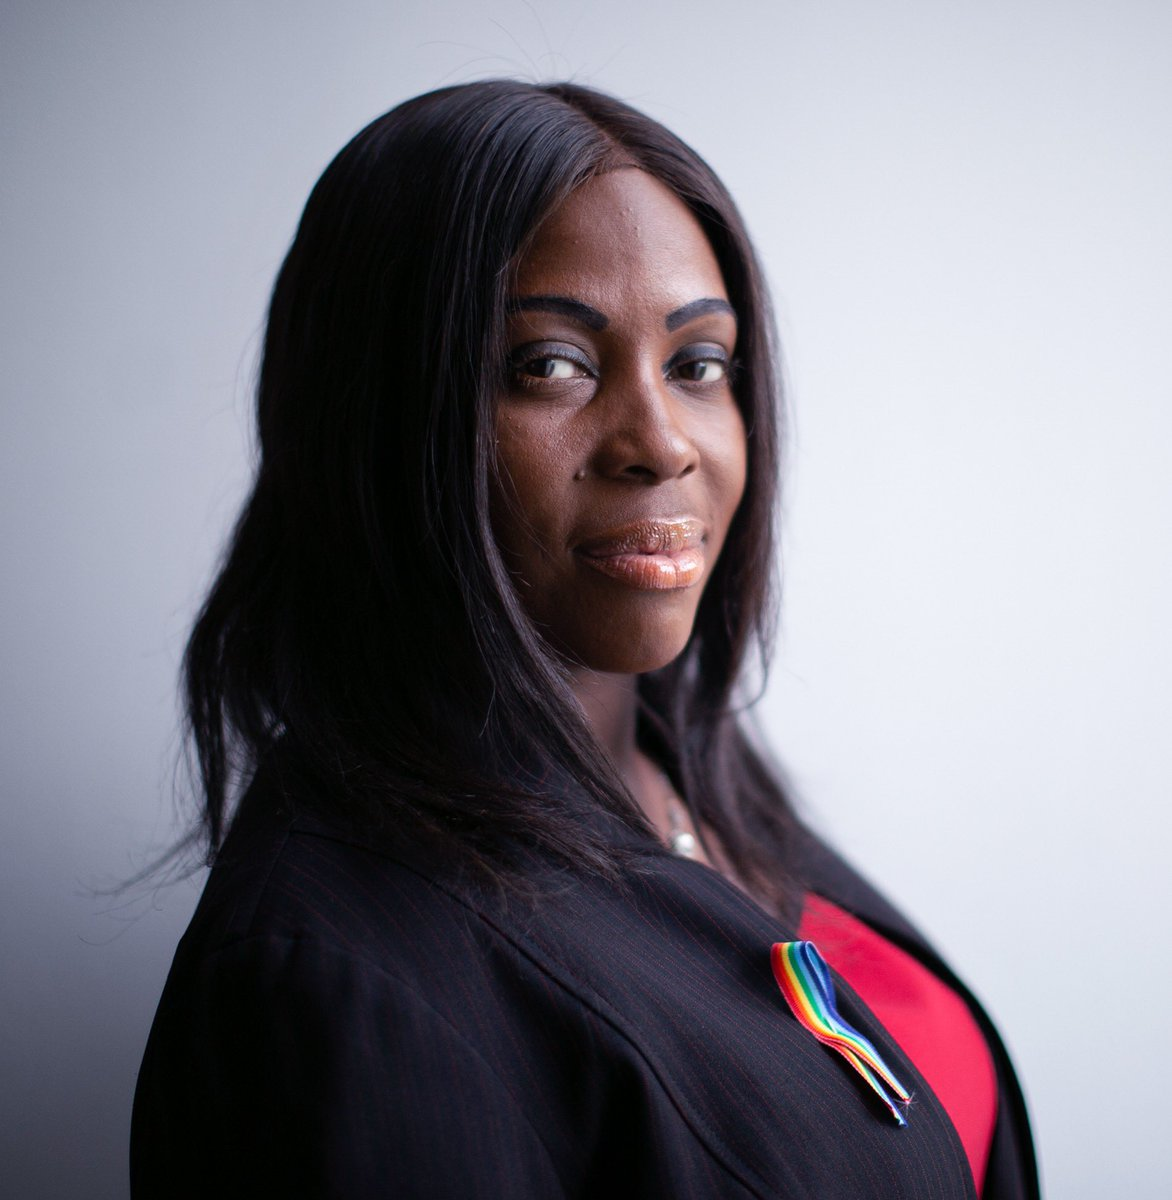 Portrait of Council Member @Vanessalgibson after hosting an event at the @BronxMuseum to celebrate #NationalComingOutDay #NCOD #Bronx